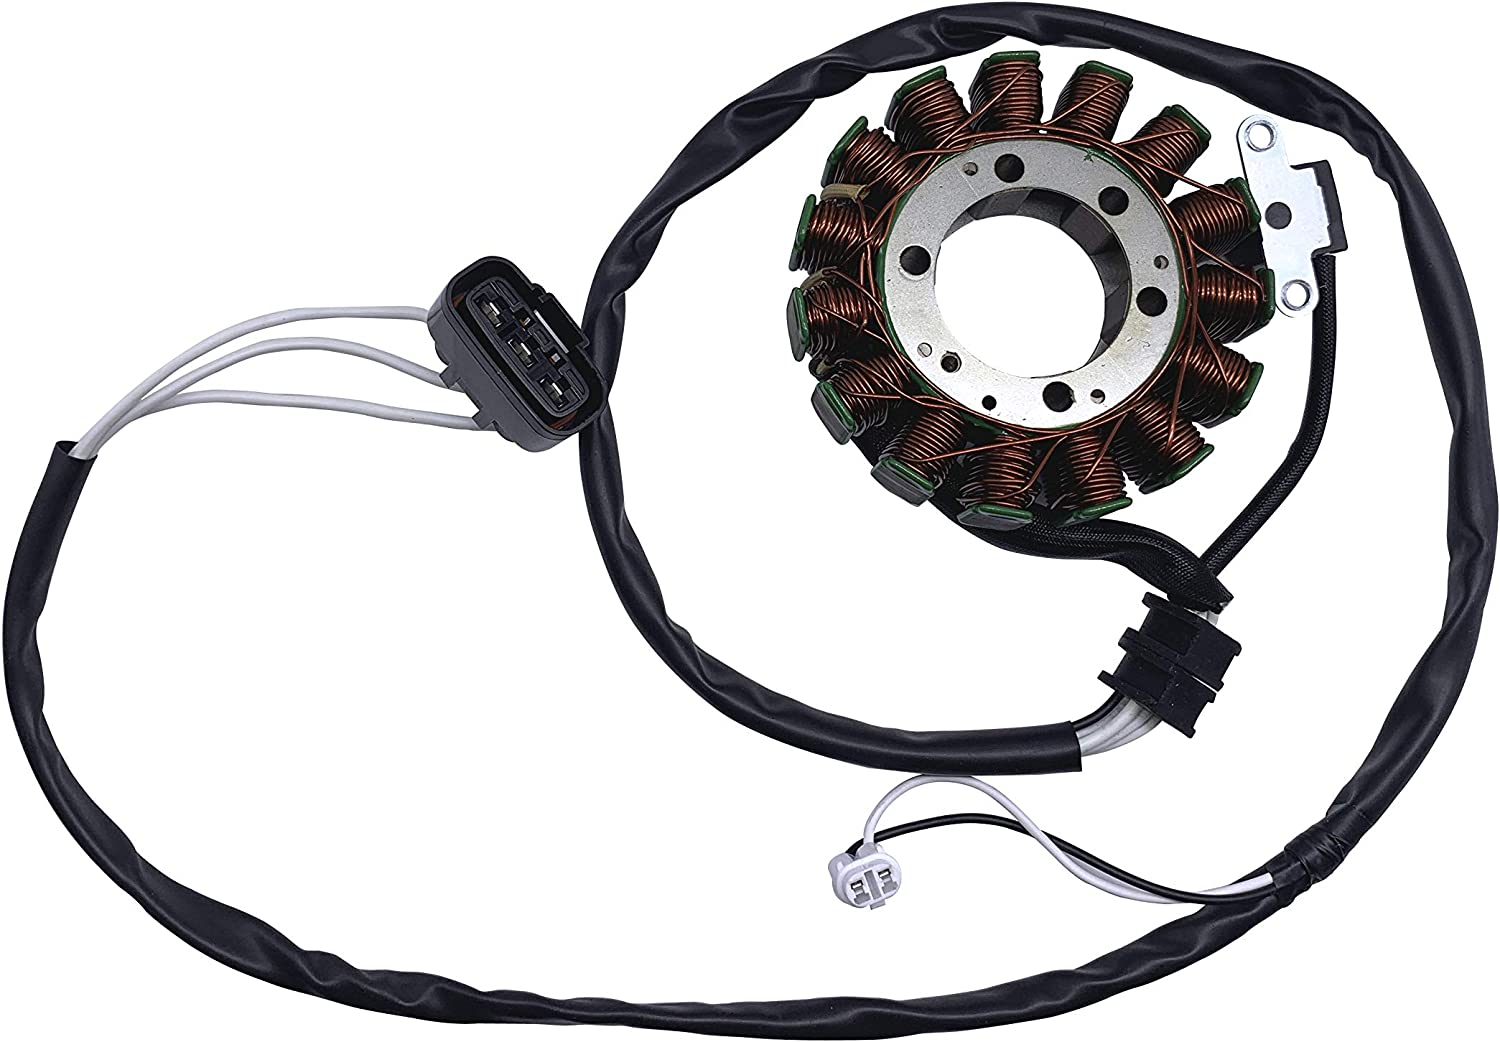 Hity Motor Stator Magneto Coil For 700 ATV 20 Grizzly A surprise favorite price is realized YAMAHA YFM